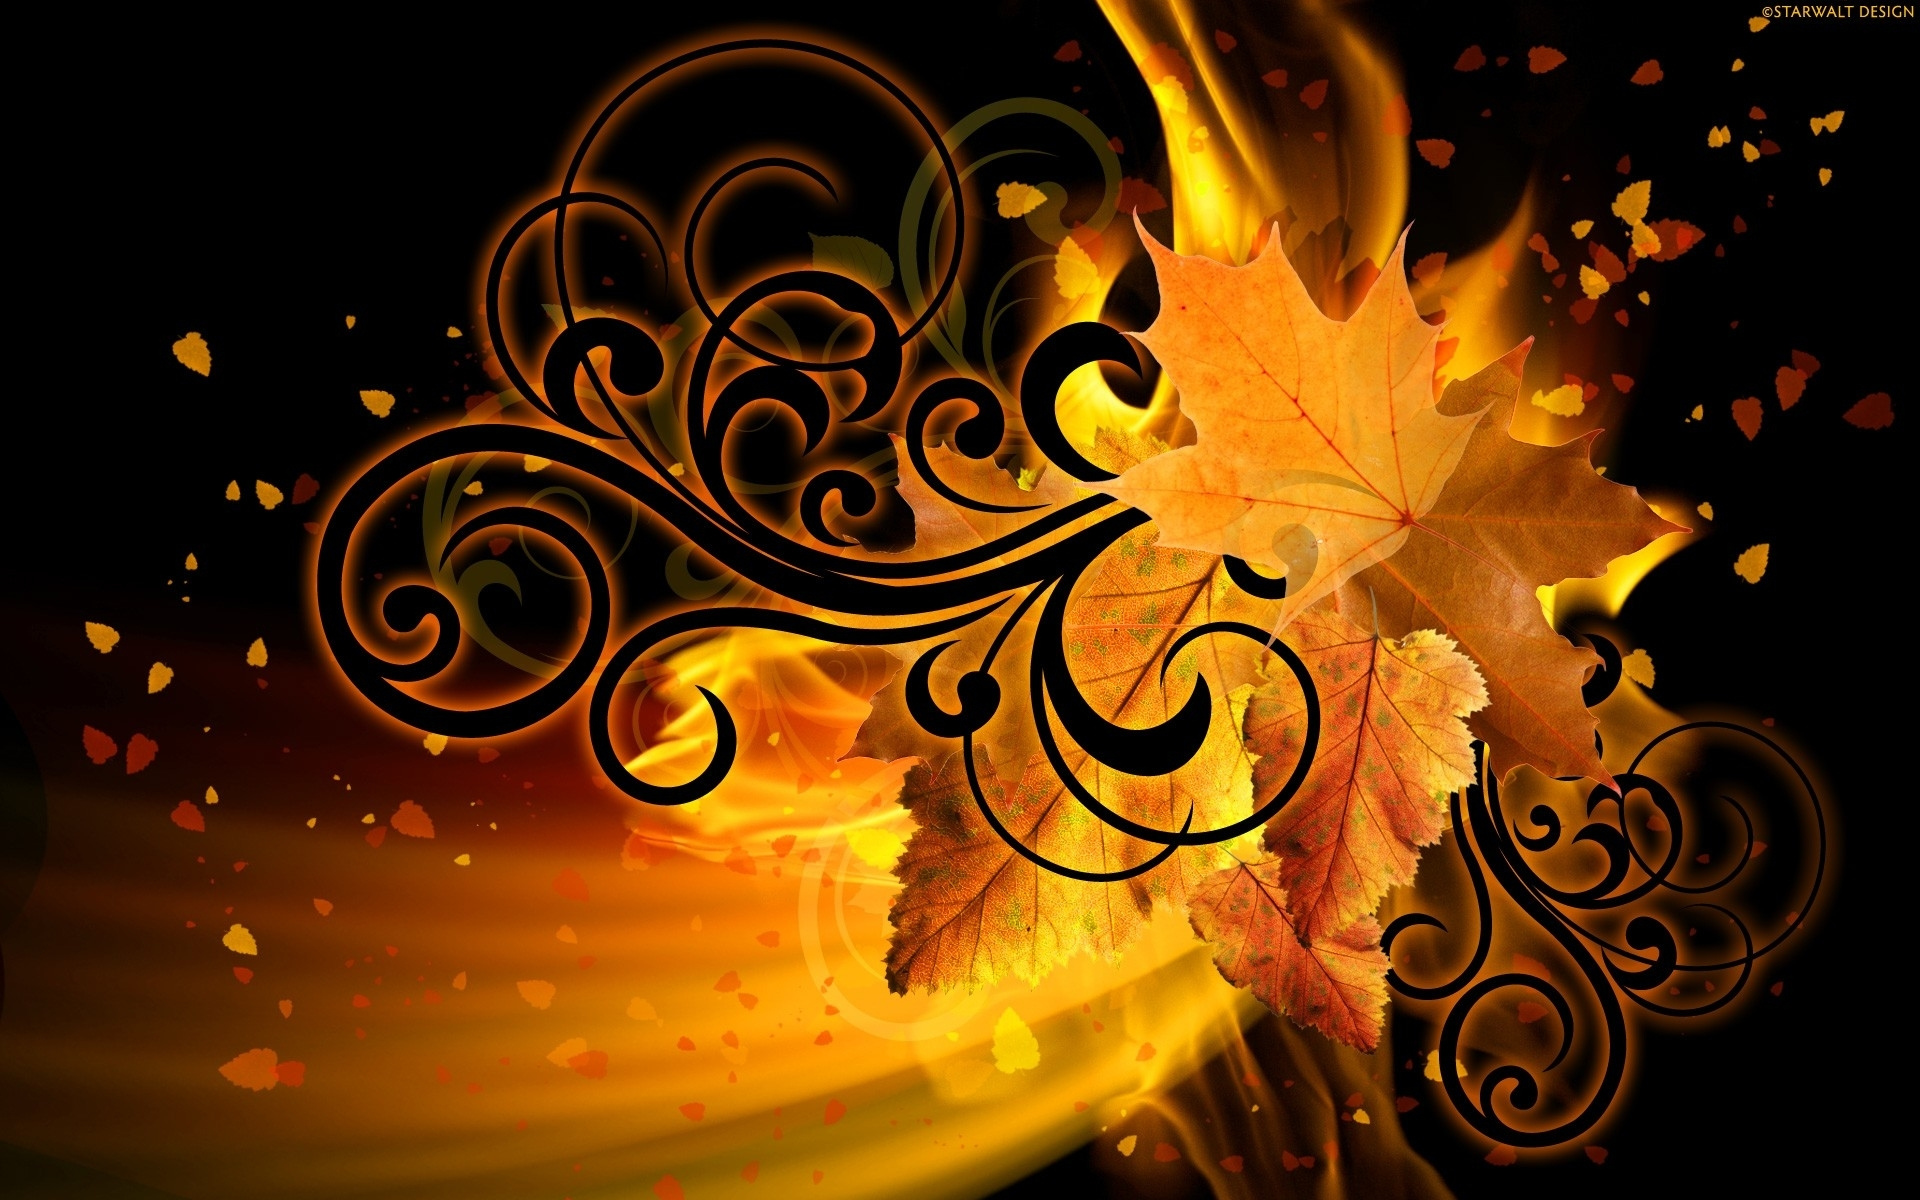 Fall Leaves Wallpaper For Ipad Abstract Autumn Digital Art Wallpapers Abstract Autumn